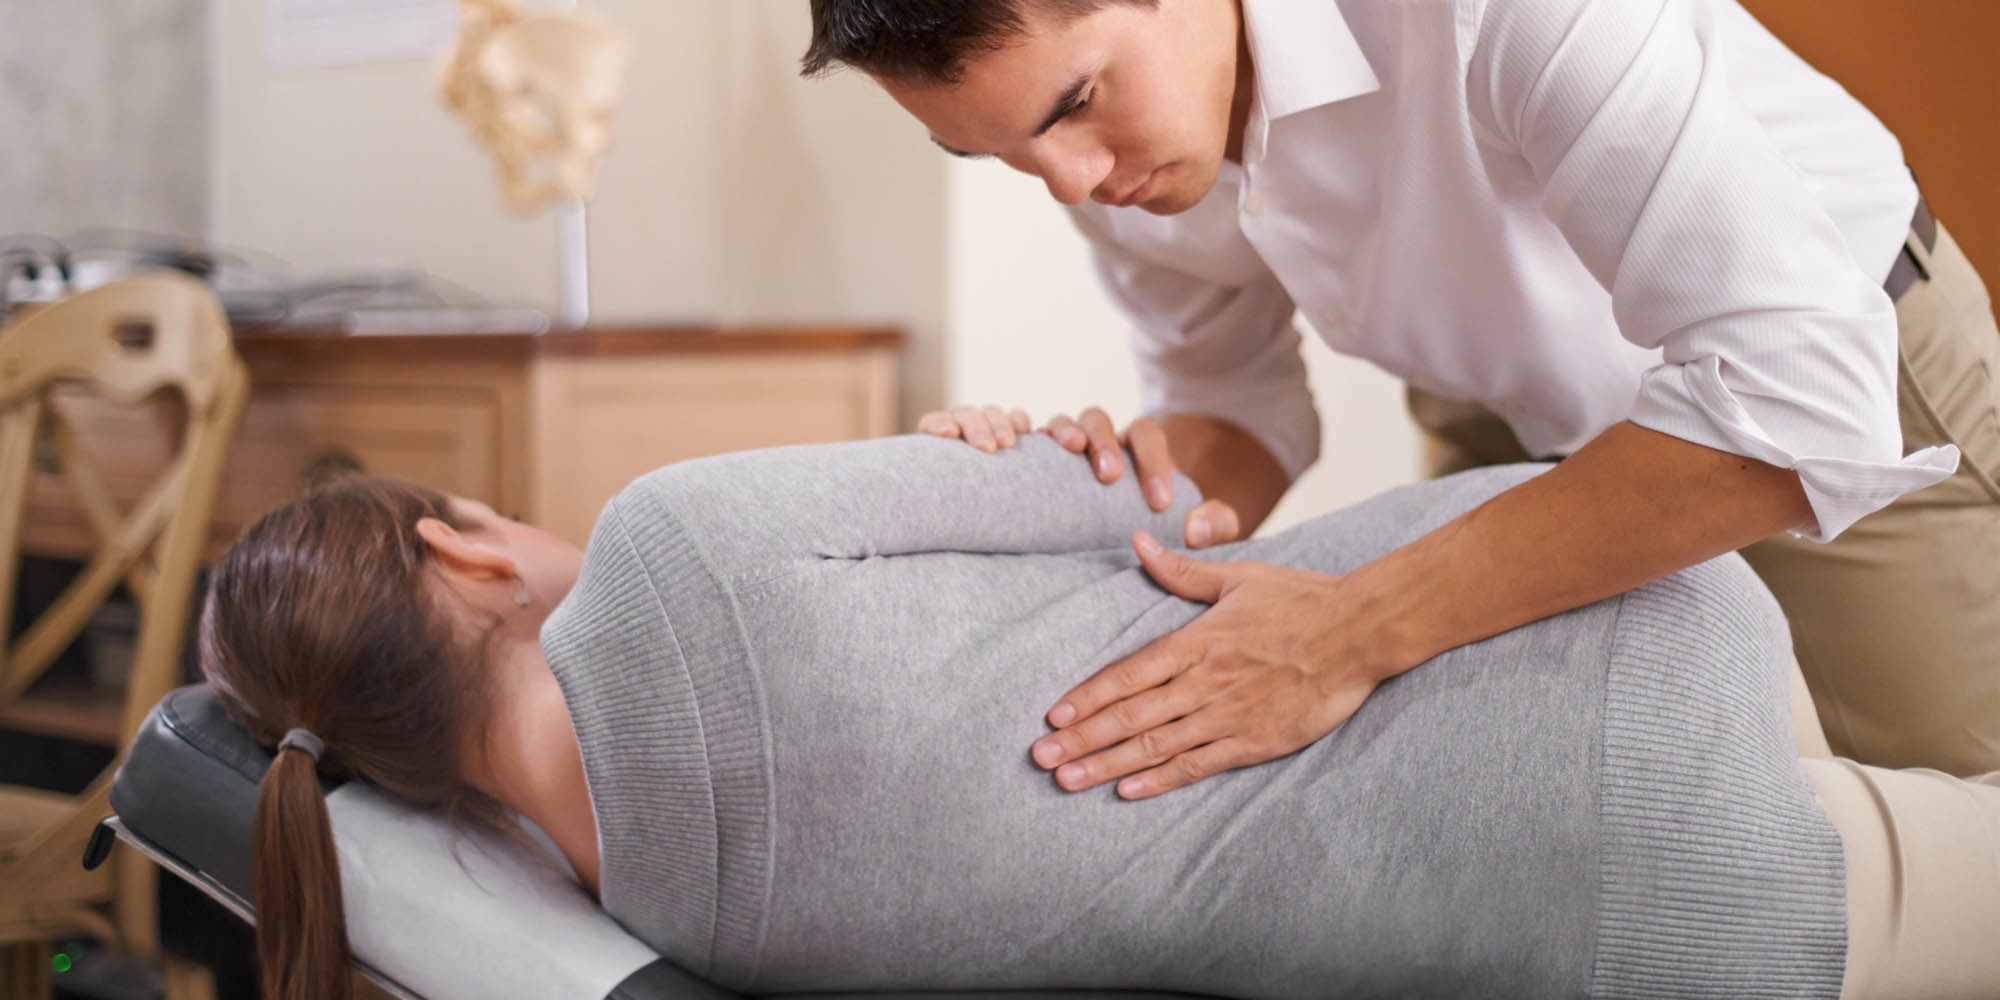 What You Need to Know About Going to a Chiropractor